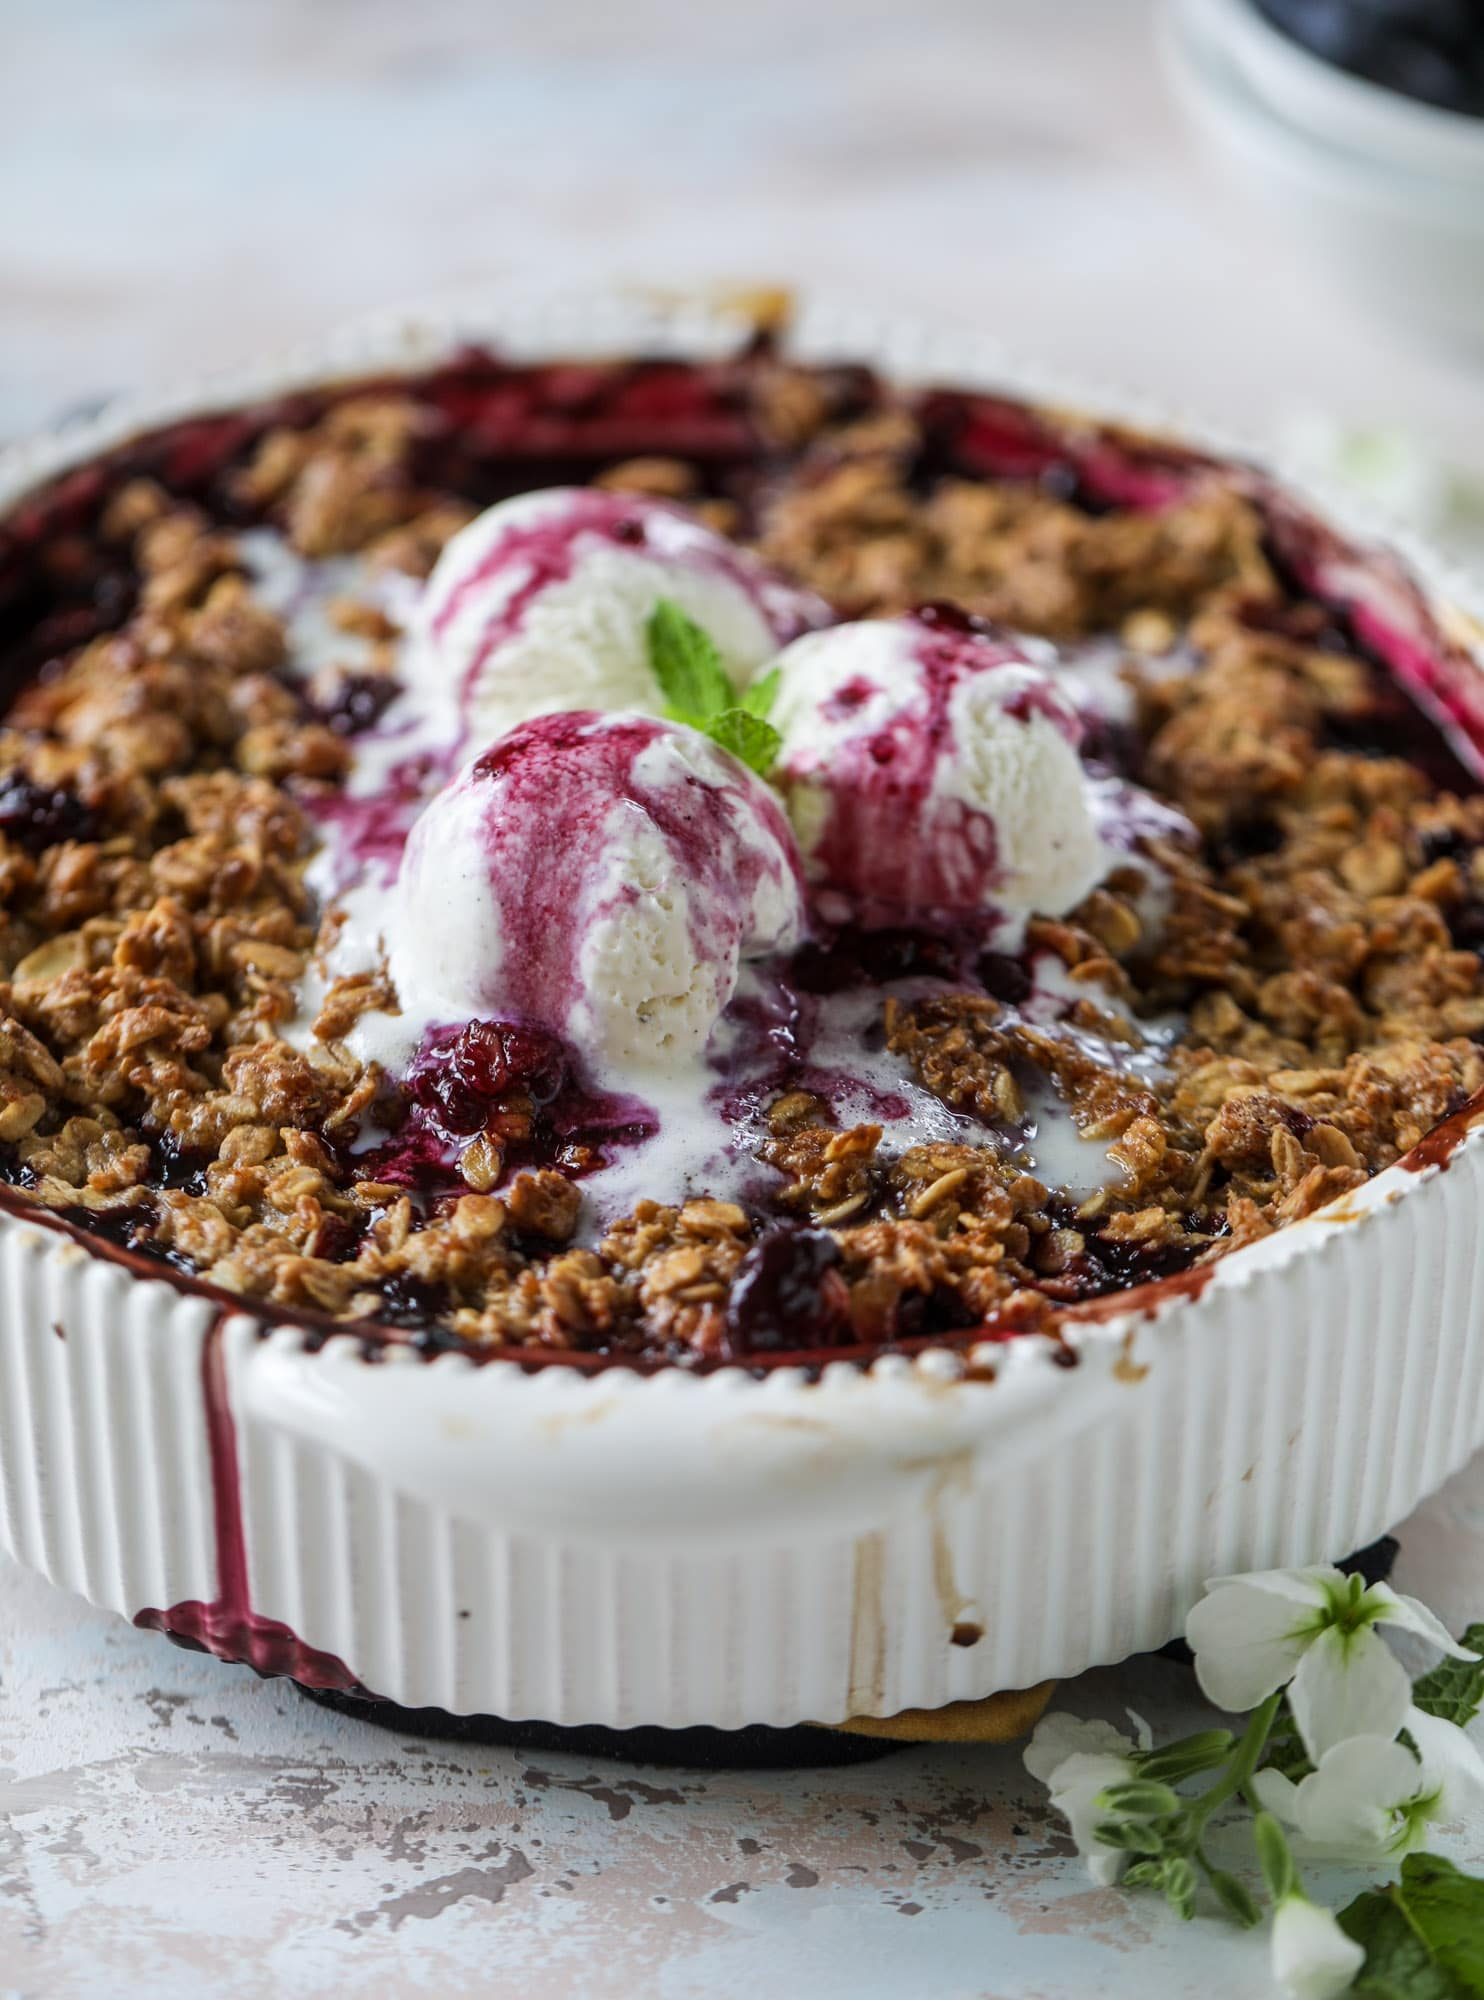 This blueberry crisp is warm and bursting with sweet and juicy fruit. It's topped with a quinoa oatmeal brown sugar topping and is the perfect dessert for summer. Served warm and topped with vanilla ice cream, it's just divine! I howsweeteats.com #blueberry #crisp #quinoa #oats #dessert #fruit